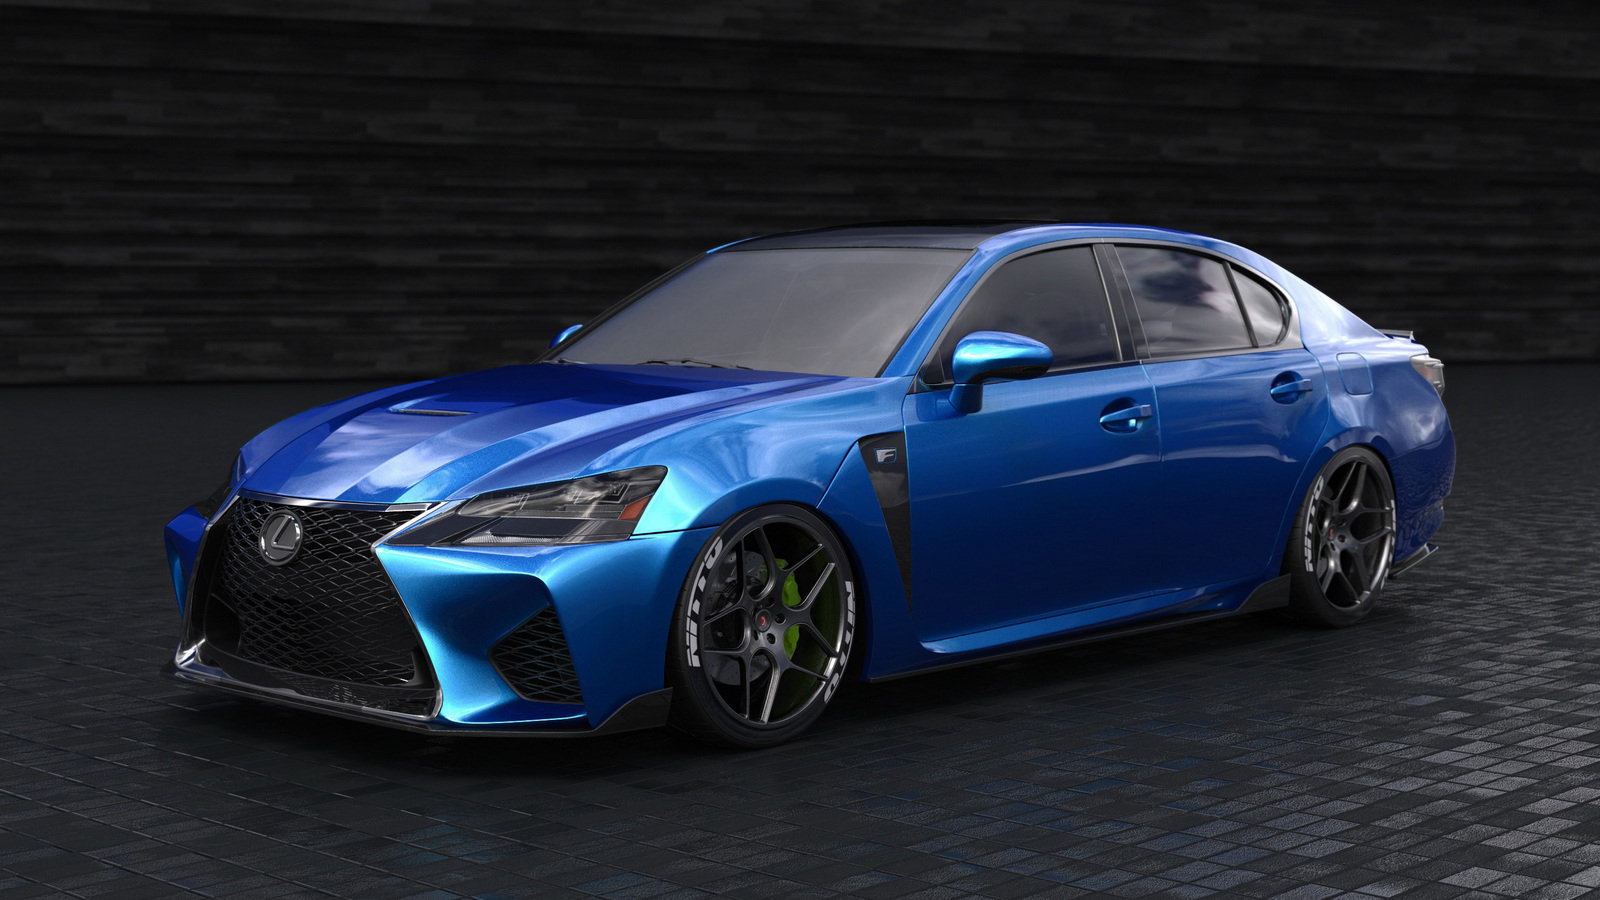 2016 lexus gs f by clark ishihara review top speed. Black Bedroom Furniture Sets. Home Design Ideas